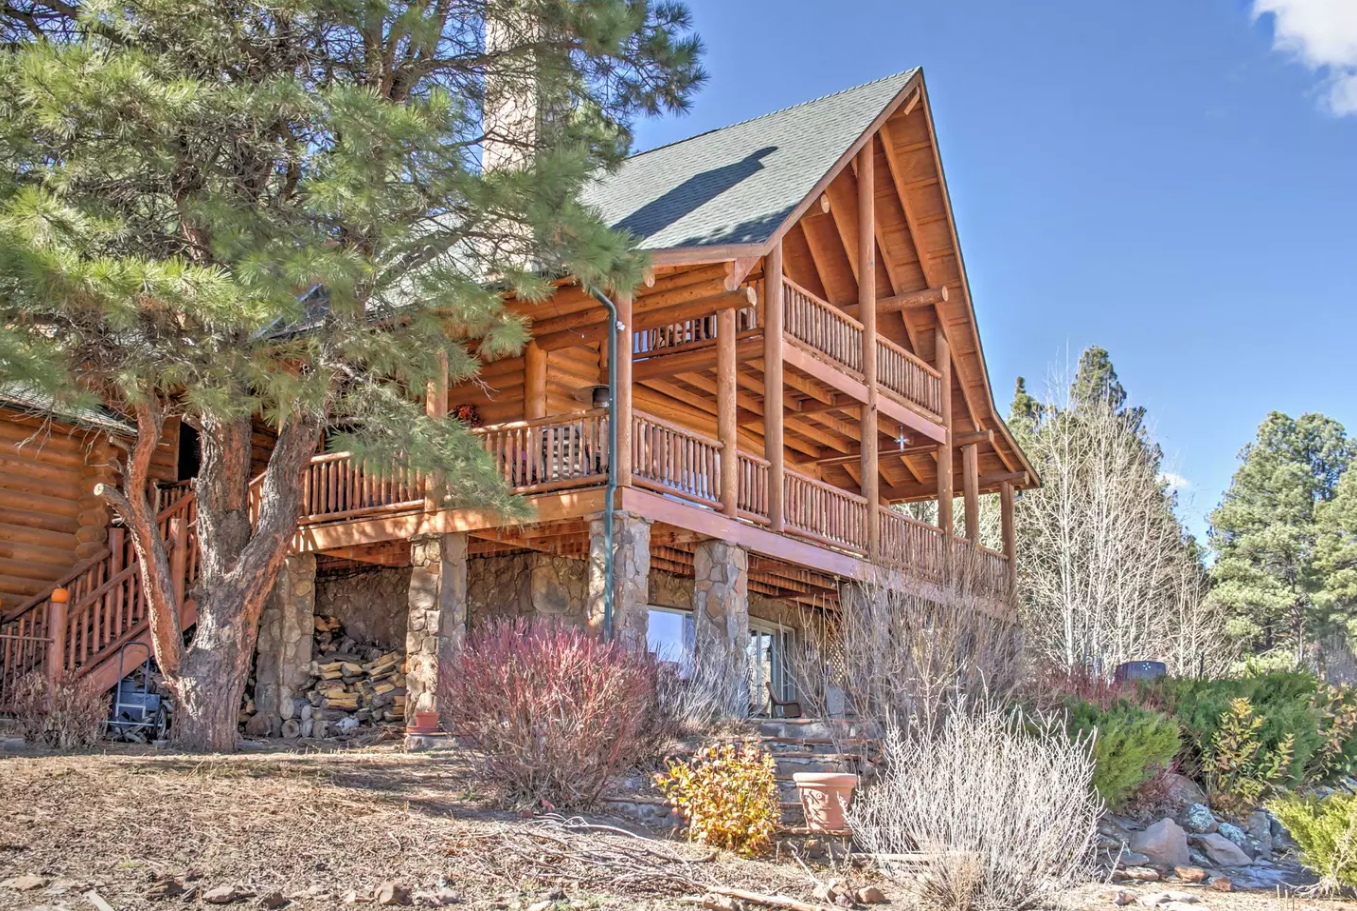 Grant yourself the ultimate escape to the Grand Canyon State with this stunning 3-bedroom, 3.5-bathroom Flagstaff vacation rental cabin, which sleeps 10 guests comfortably. Chock-full of amenities and situated in a private scenic landscape.  Photo 12 of 12 in Alfie the A-Frame and 10 Other A-Grade Accommodations